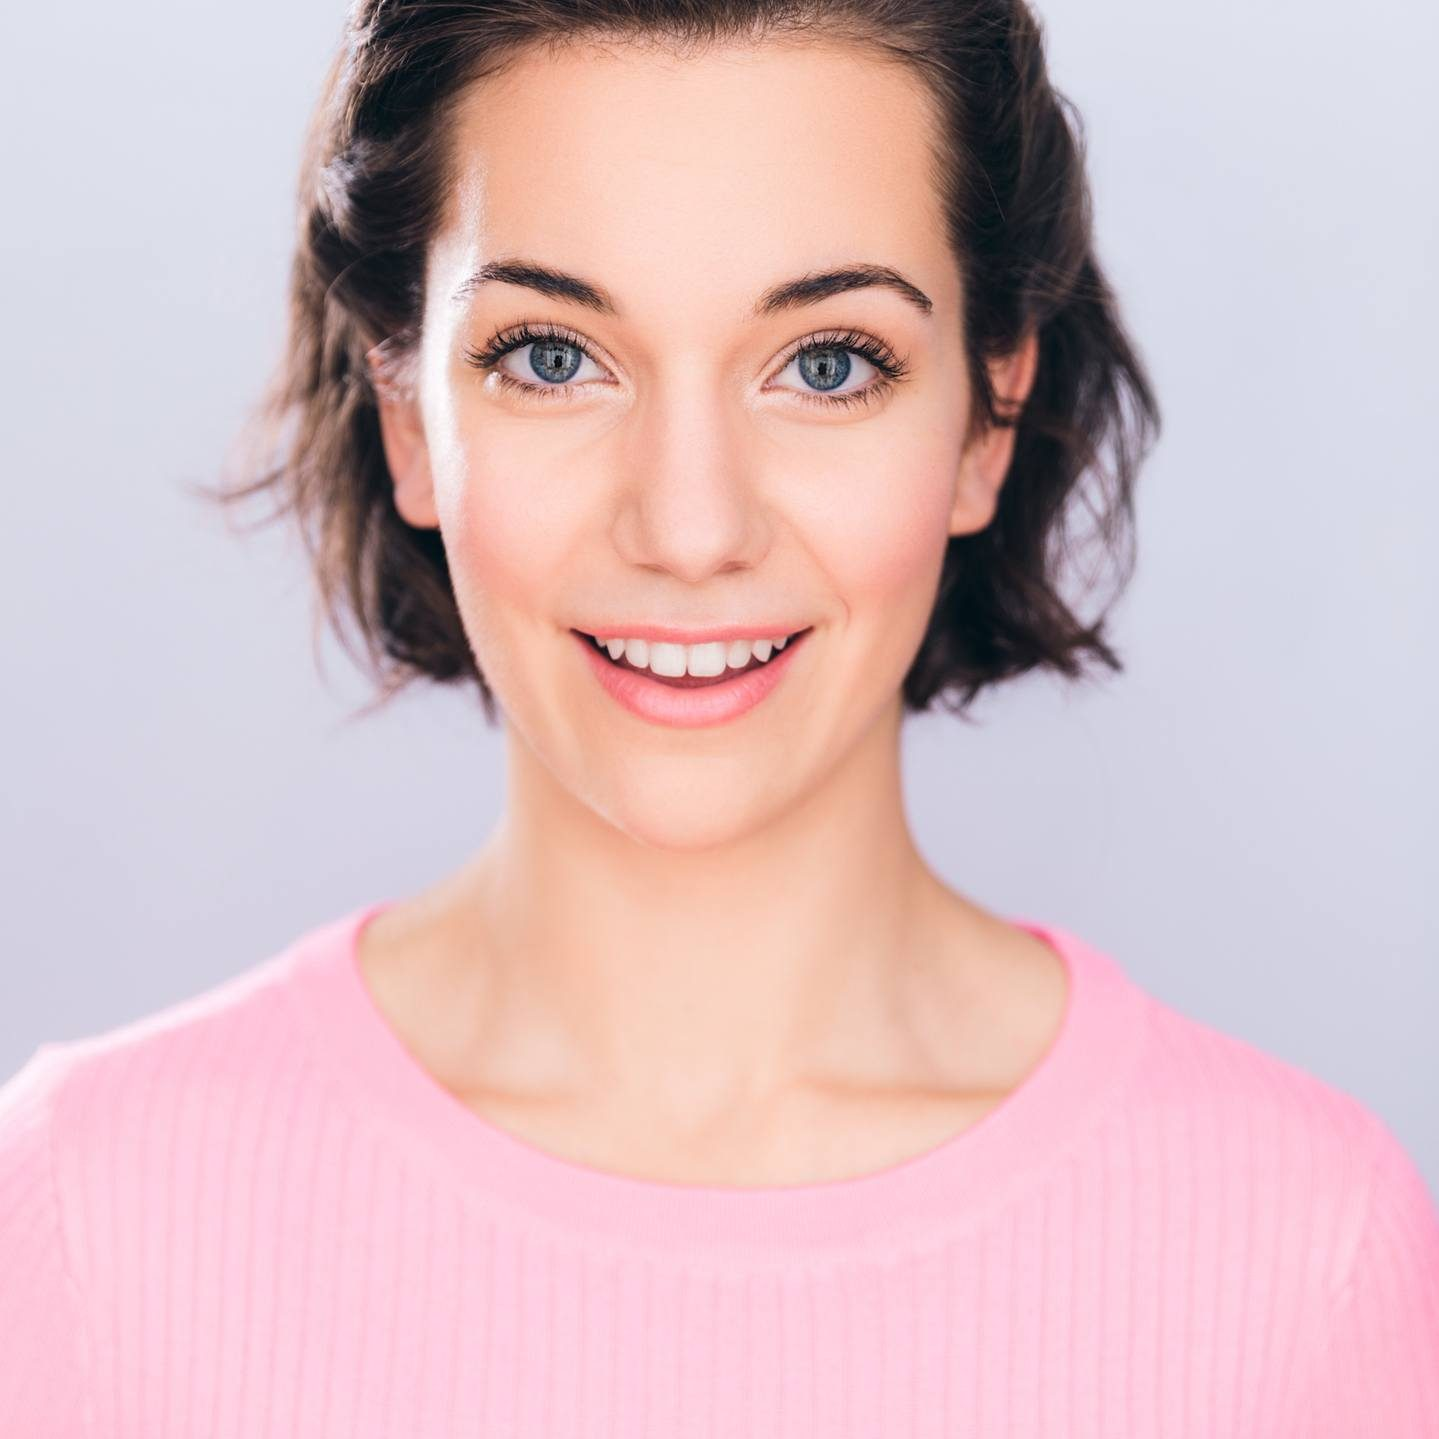 Emily Morgan Kram Headshot